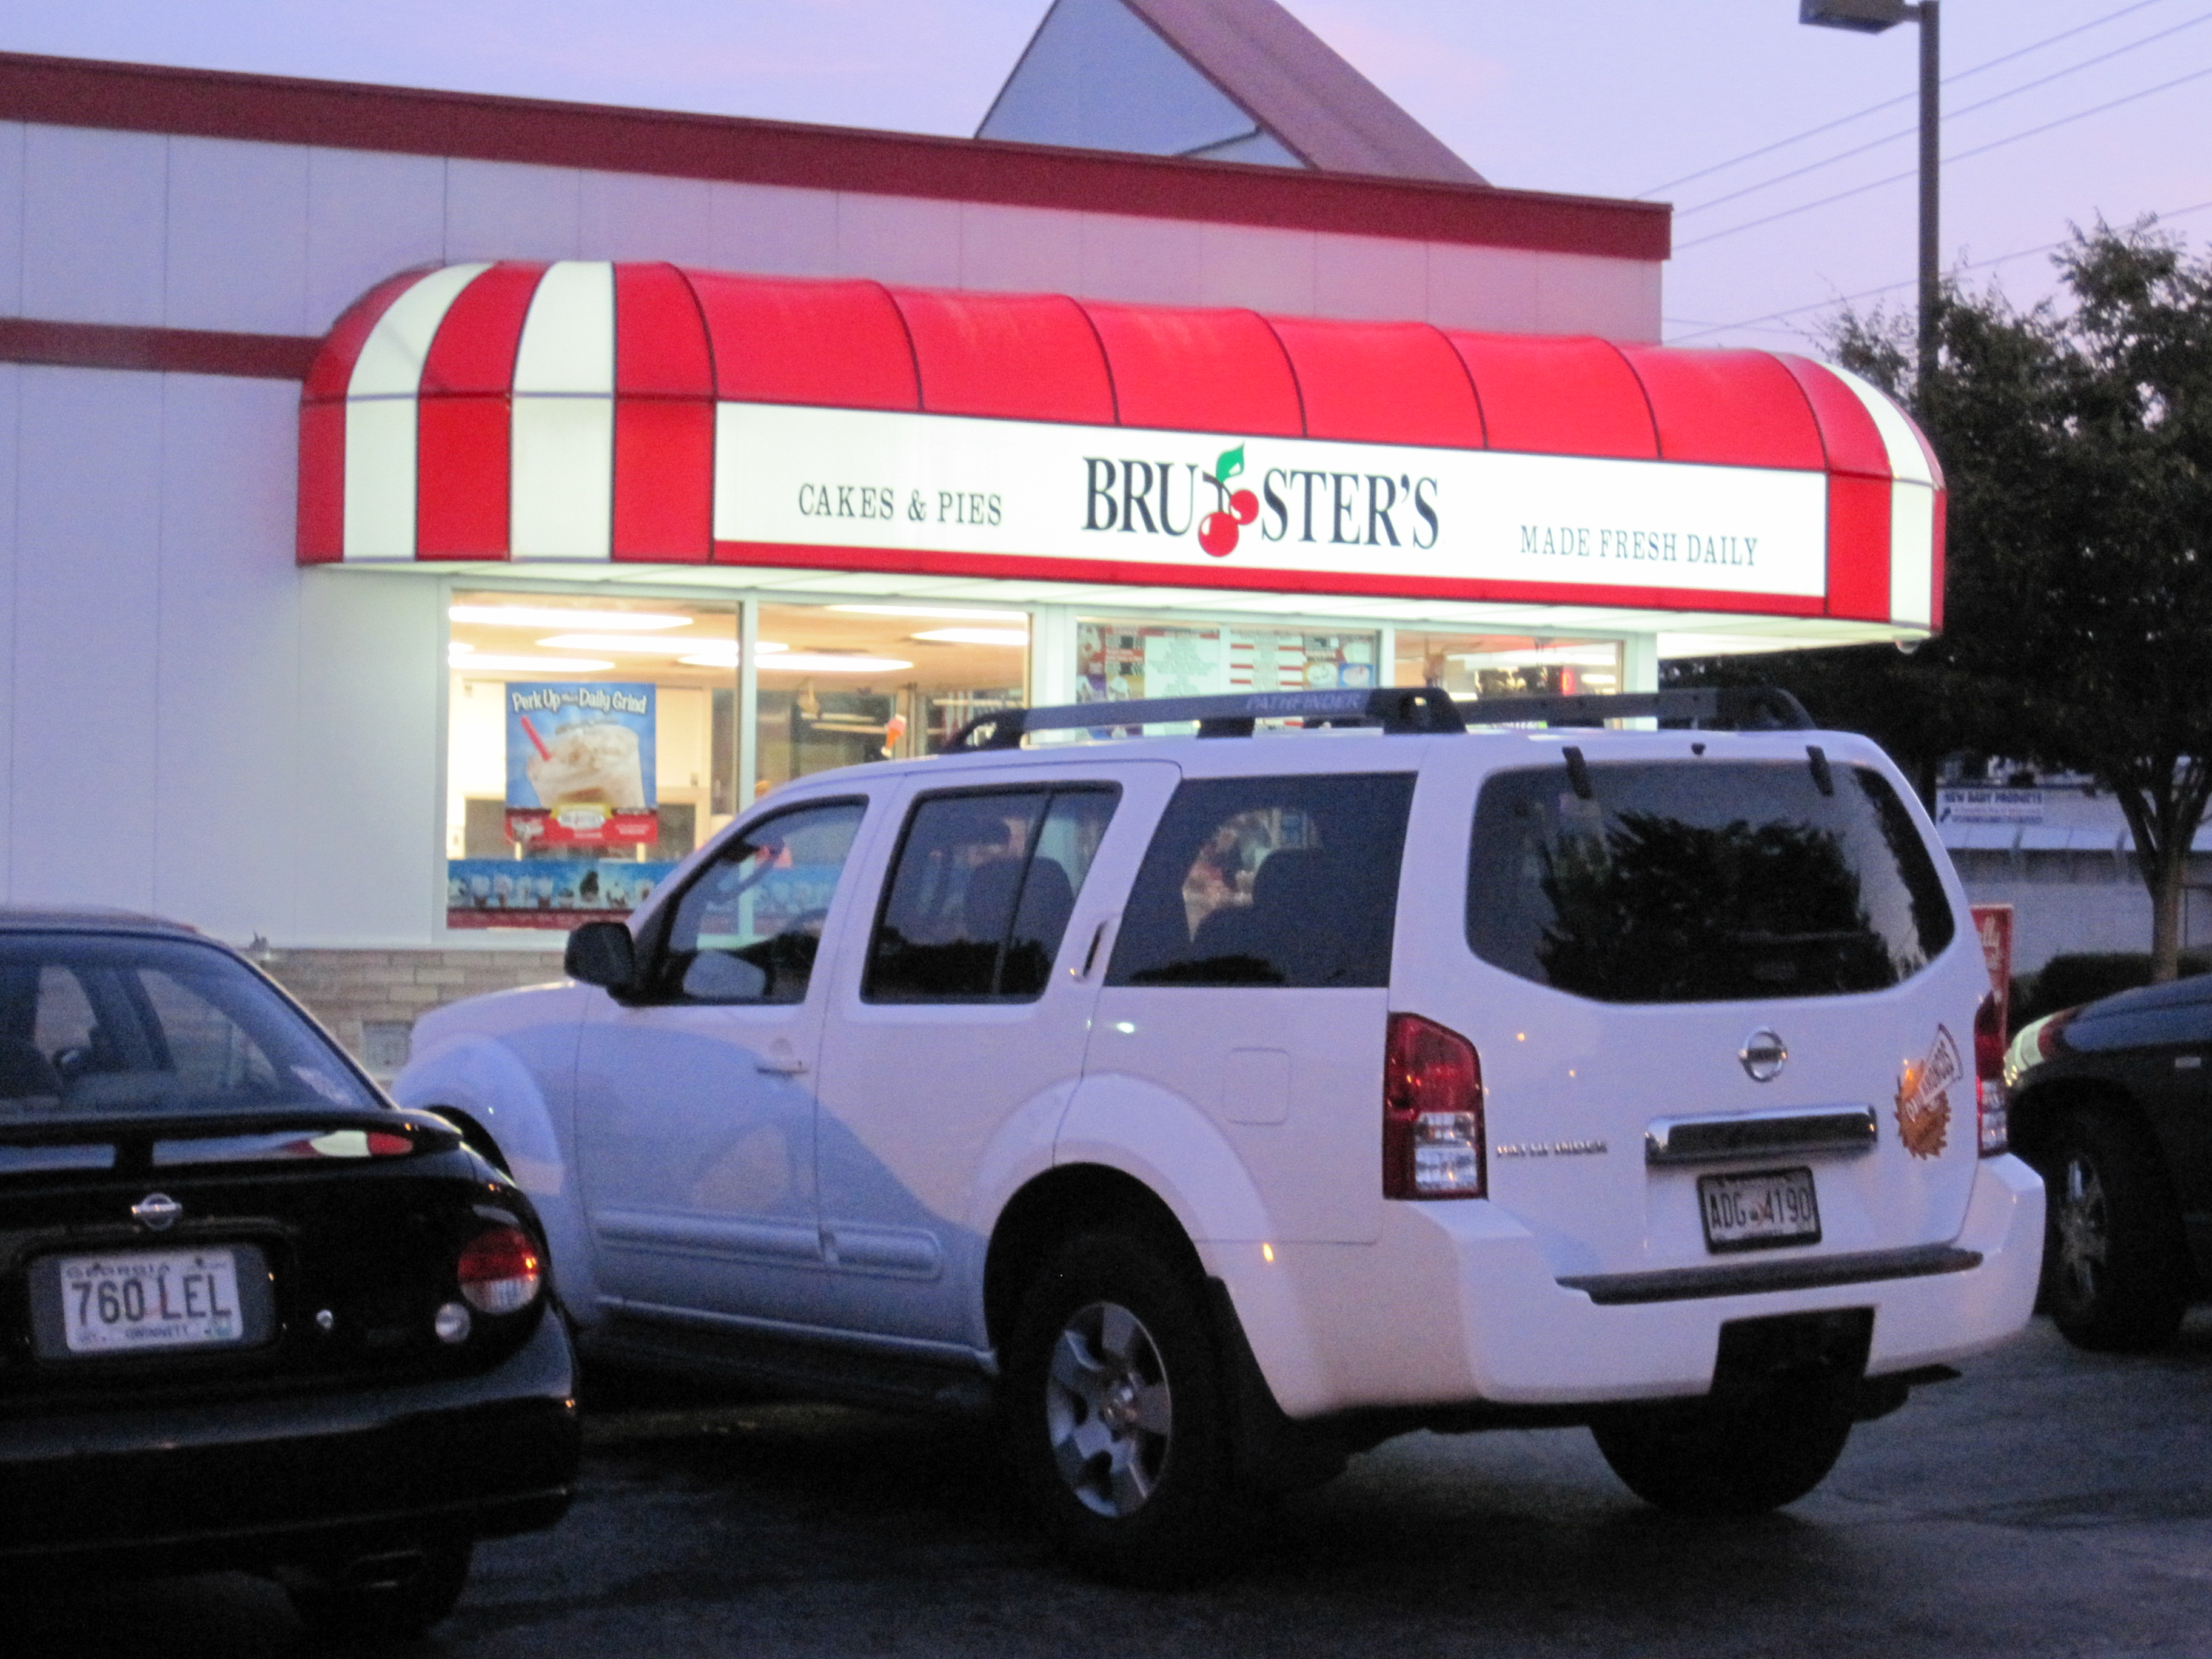 Brusters offers an excellent premium ice cream, with a lot of flavor and a